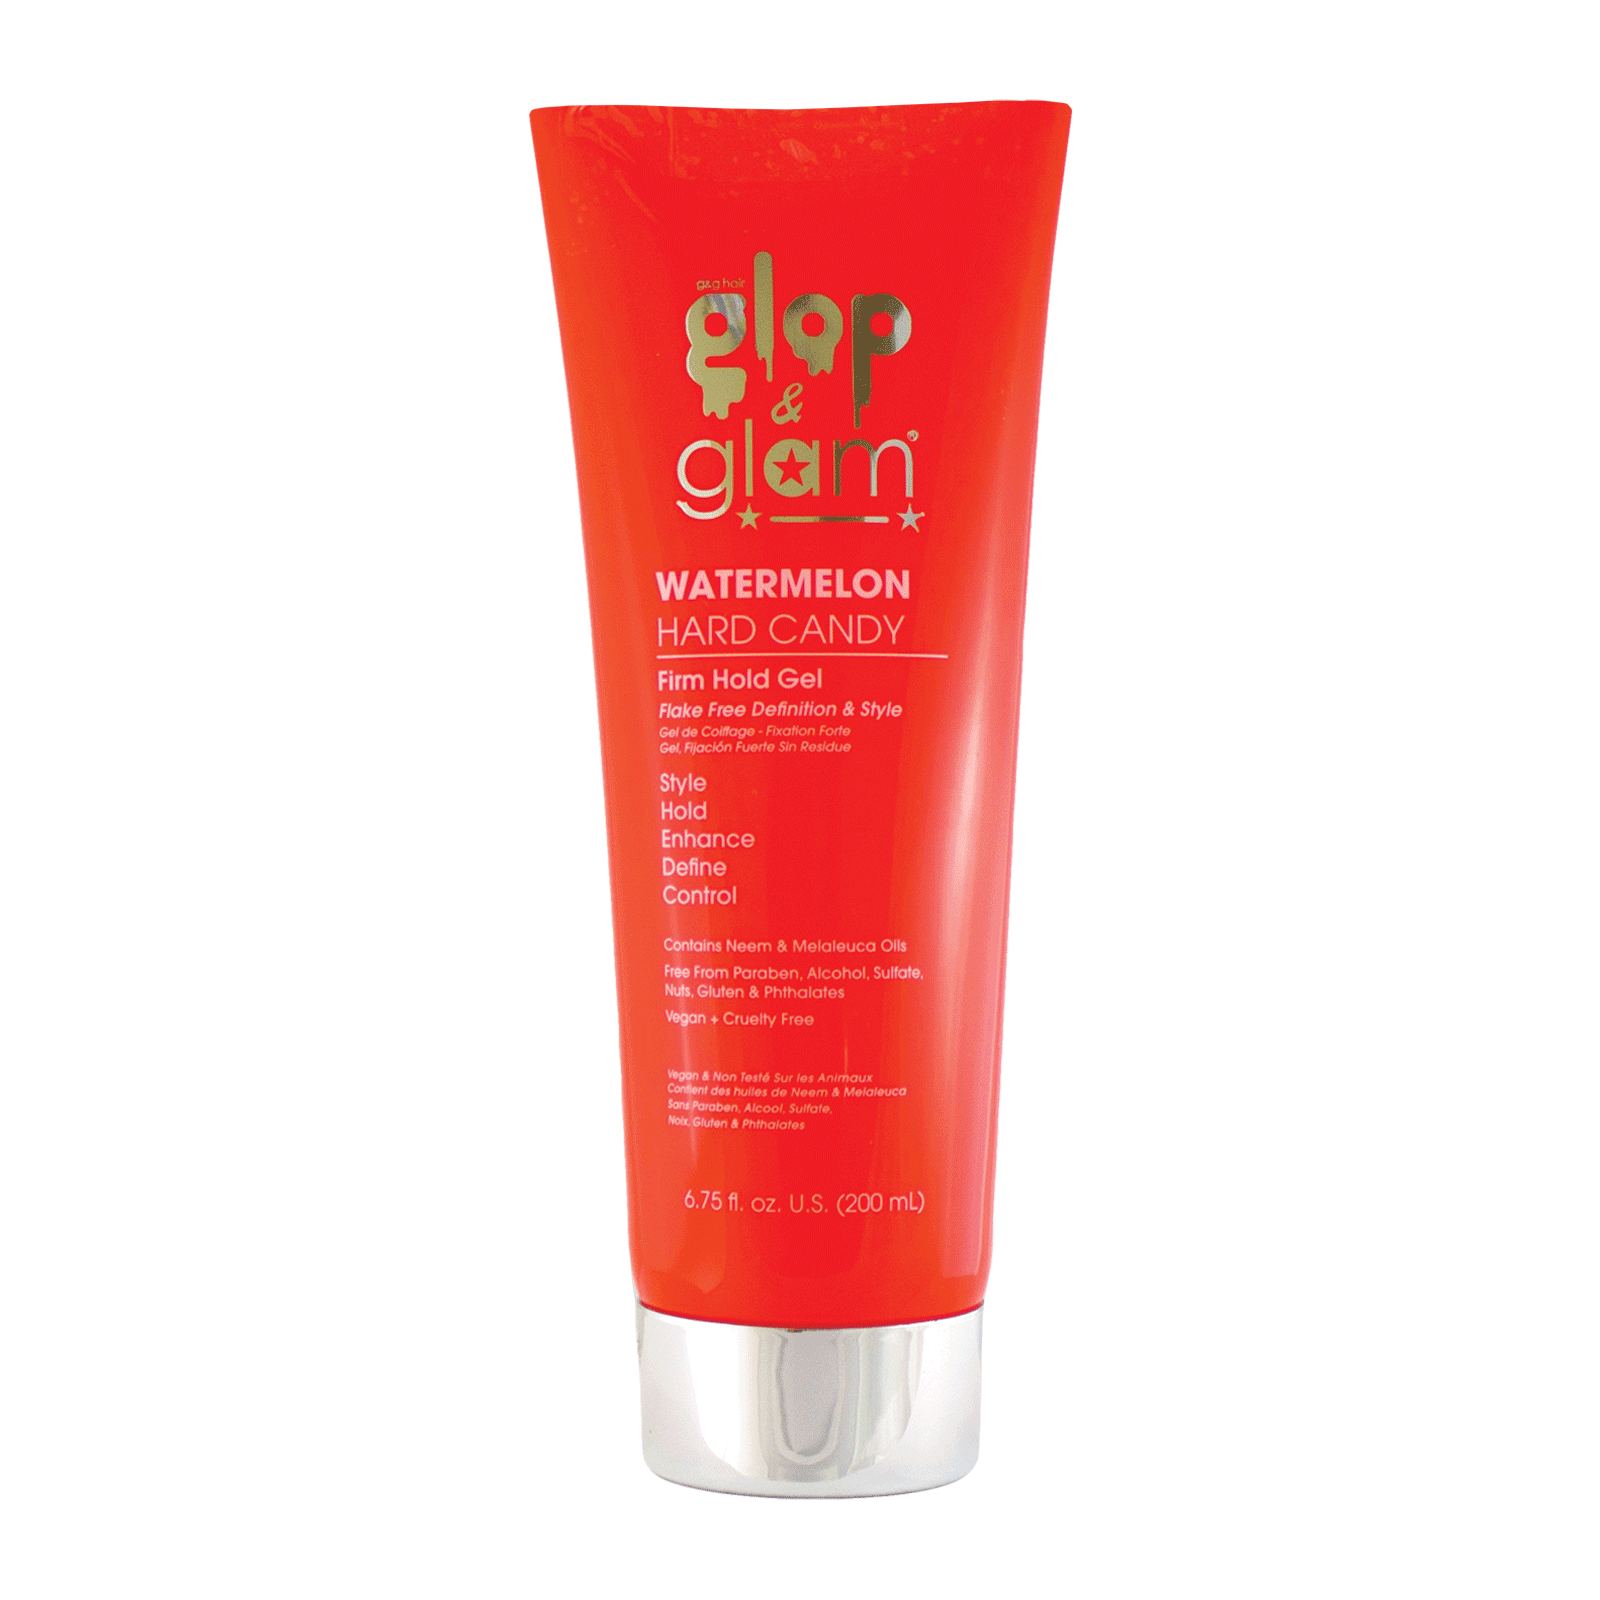 Watermelon Hard Candy Firm Hold Gel